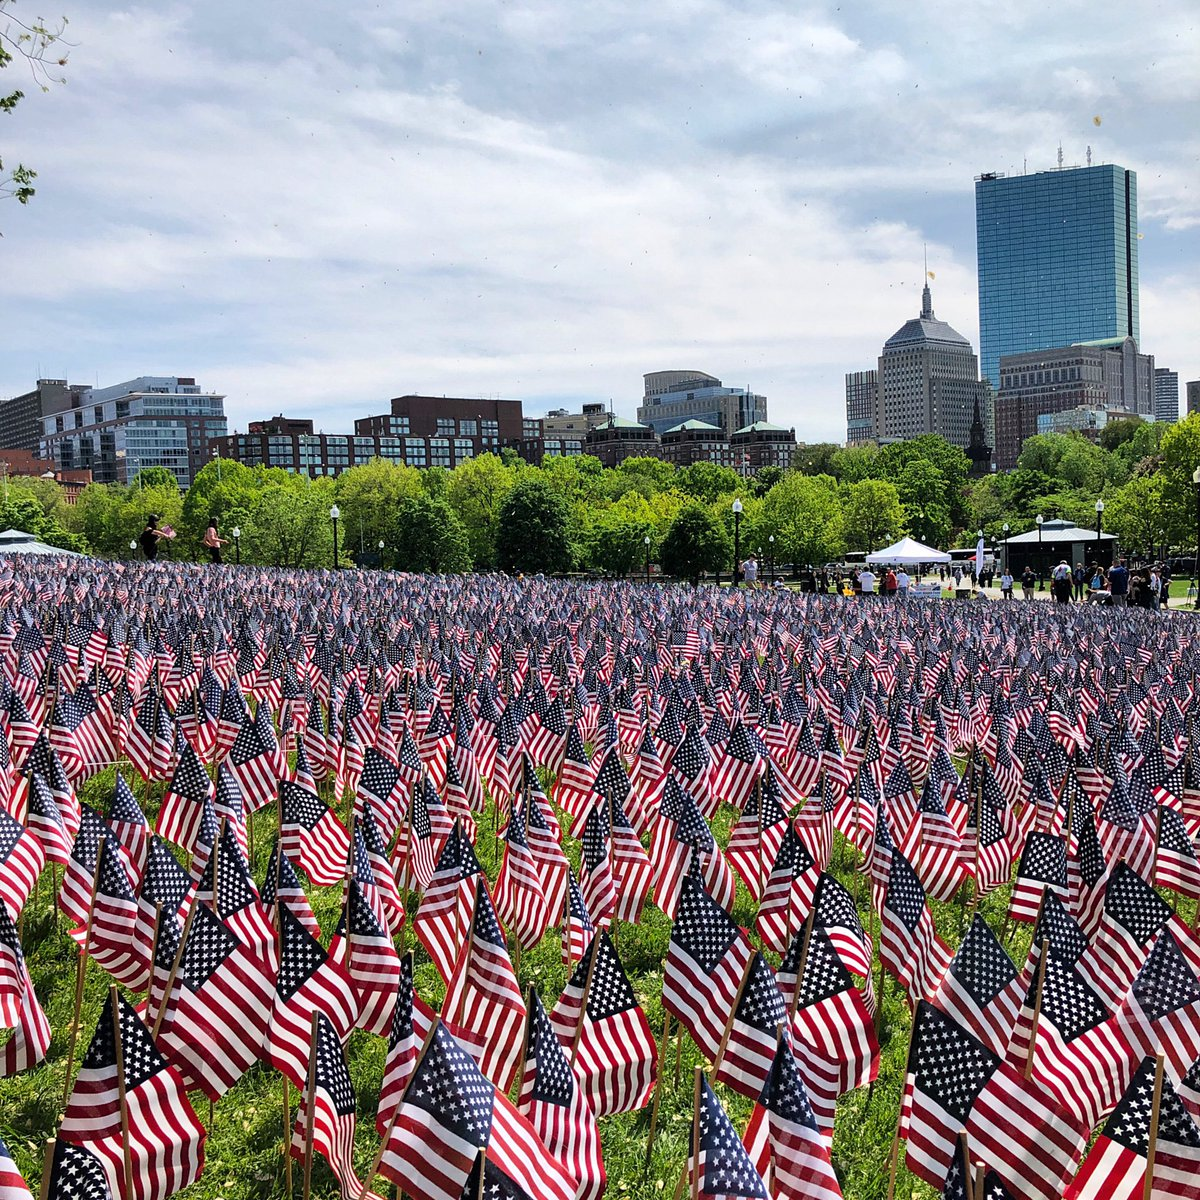 37,000 American Flags are now planted in the Boston Common in memory of every fallen Massachusetts service member from the Revolutionary War to the present. http://massmilitaryheroes.org – at Boston Common